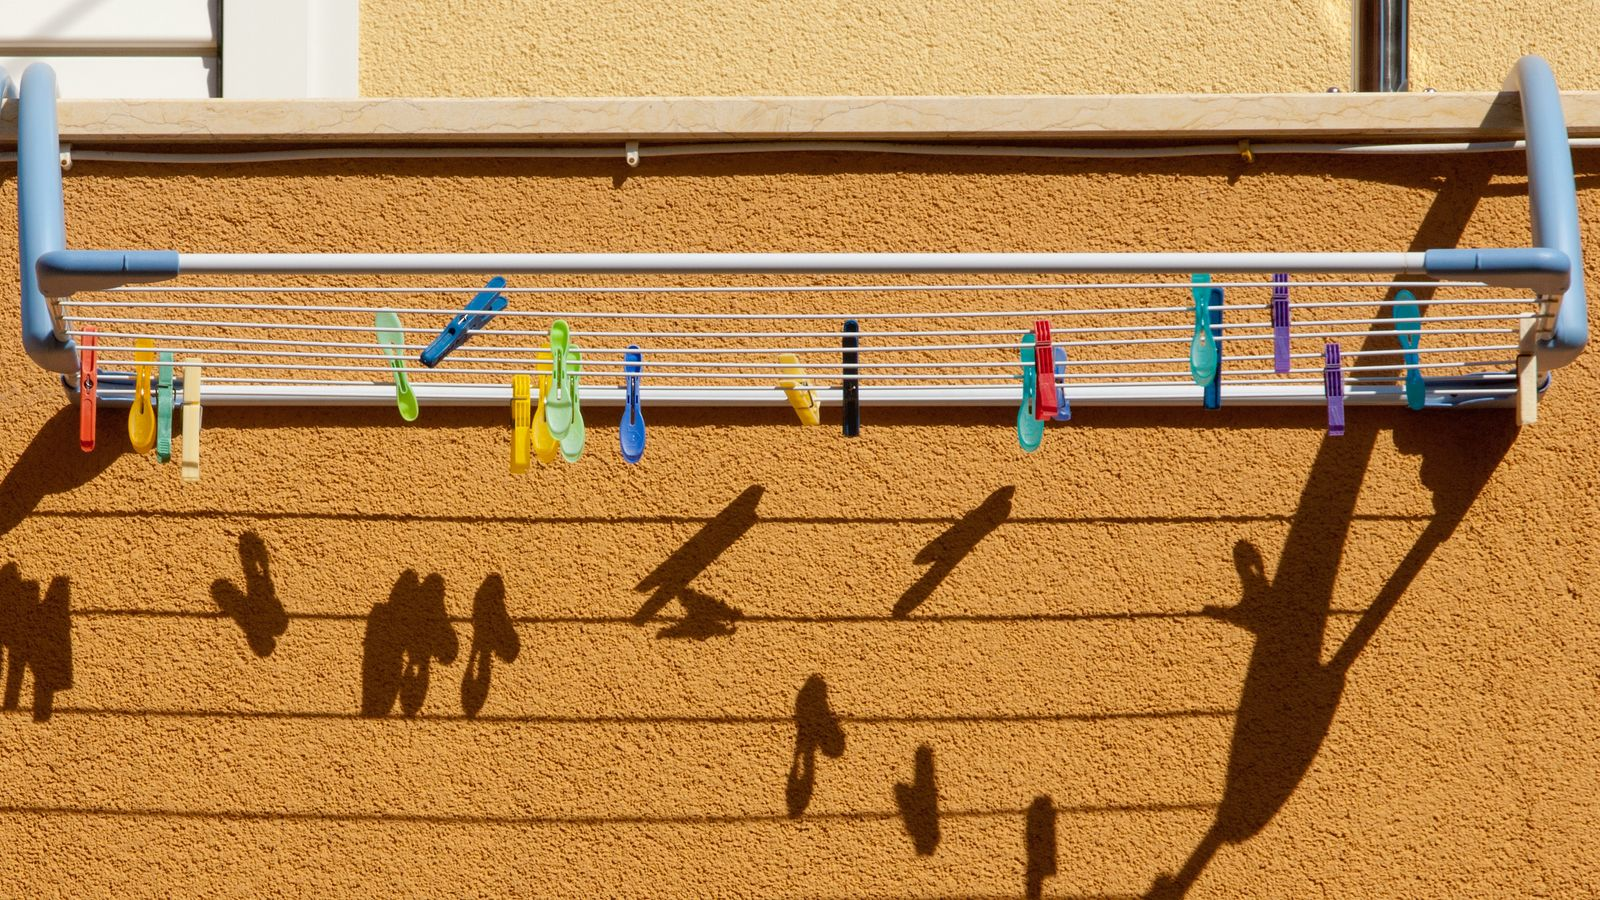 Laundry airer buying guide